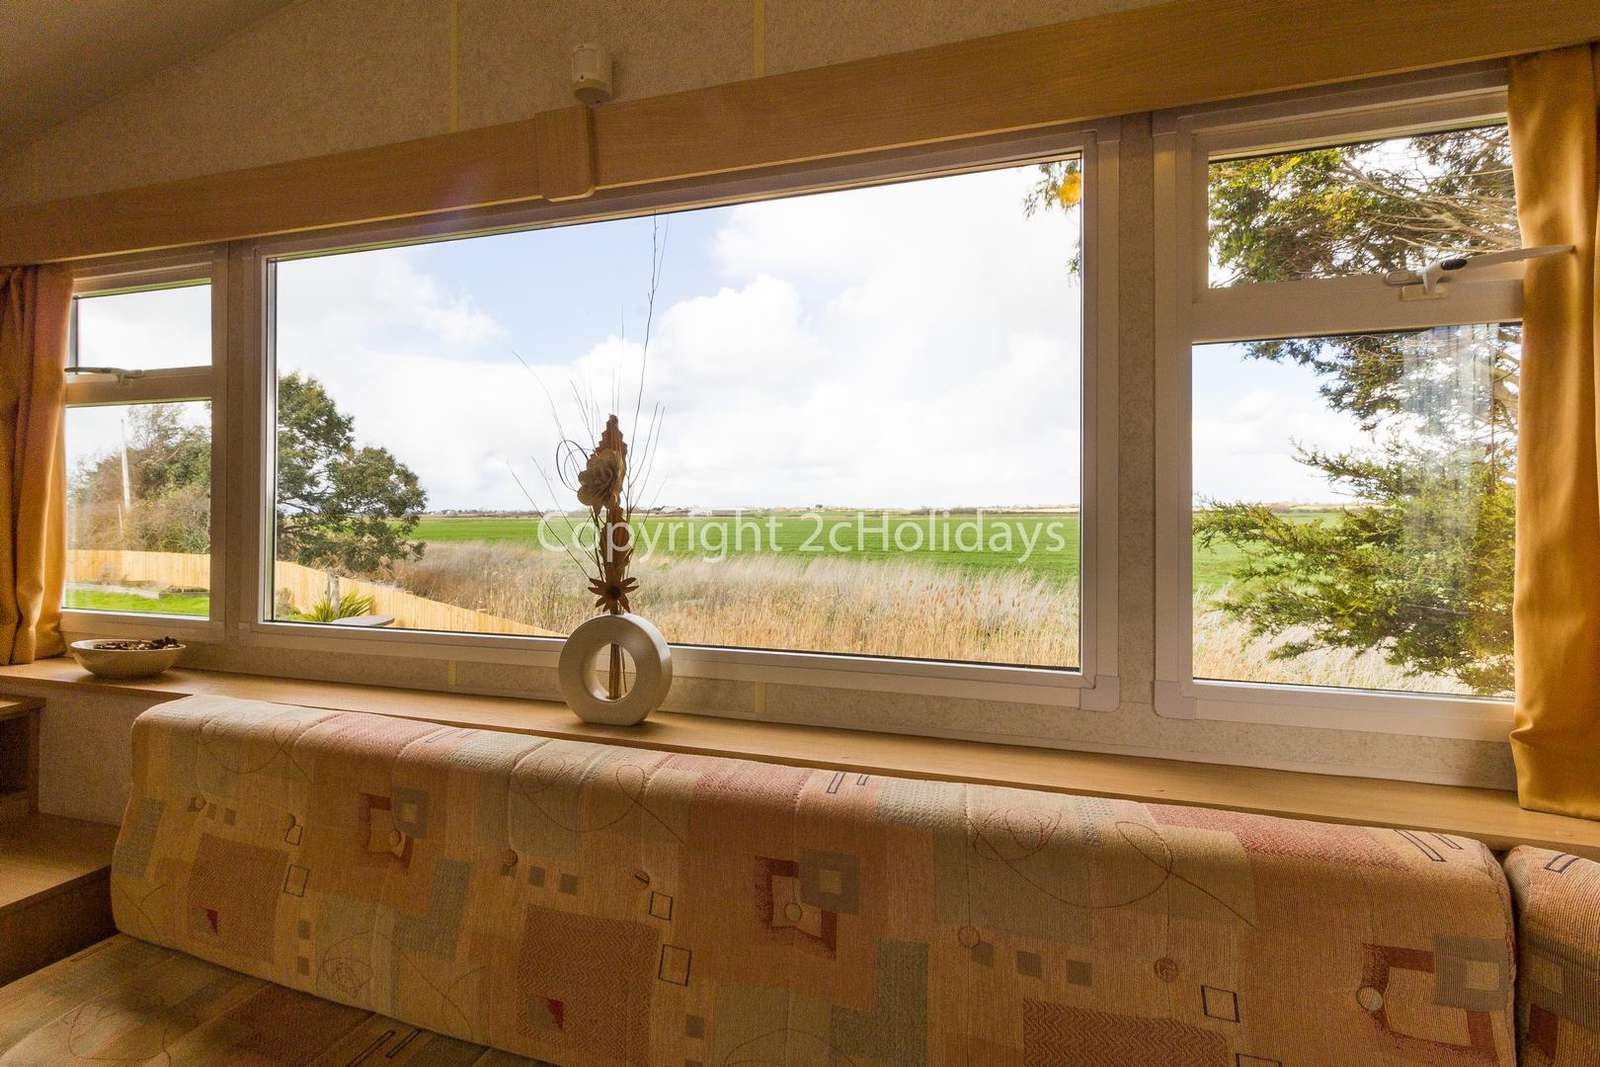 Enjoy stunning field views from this lounge!